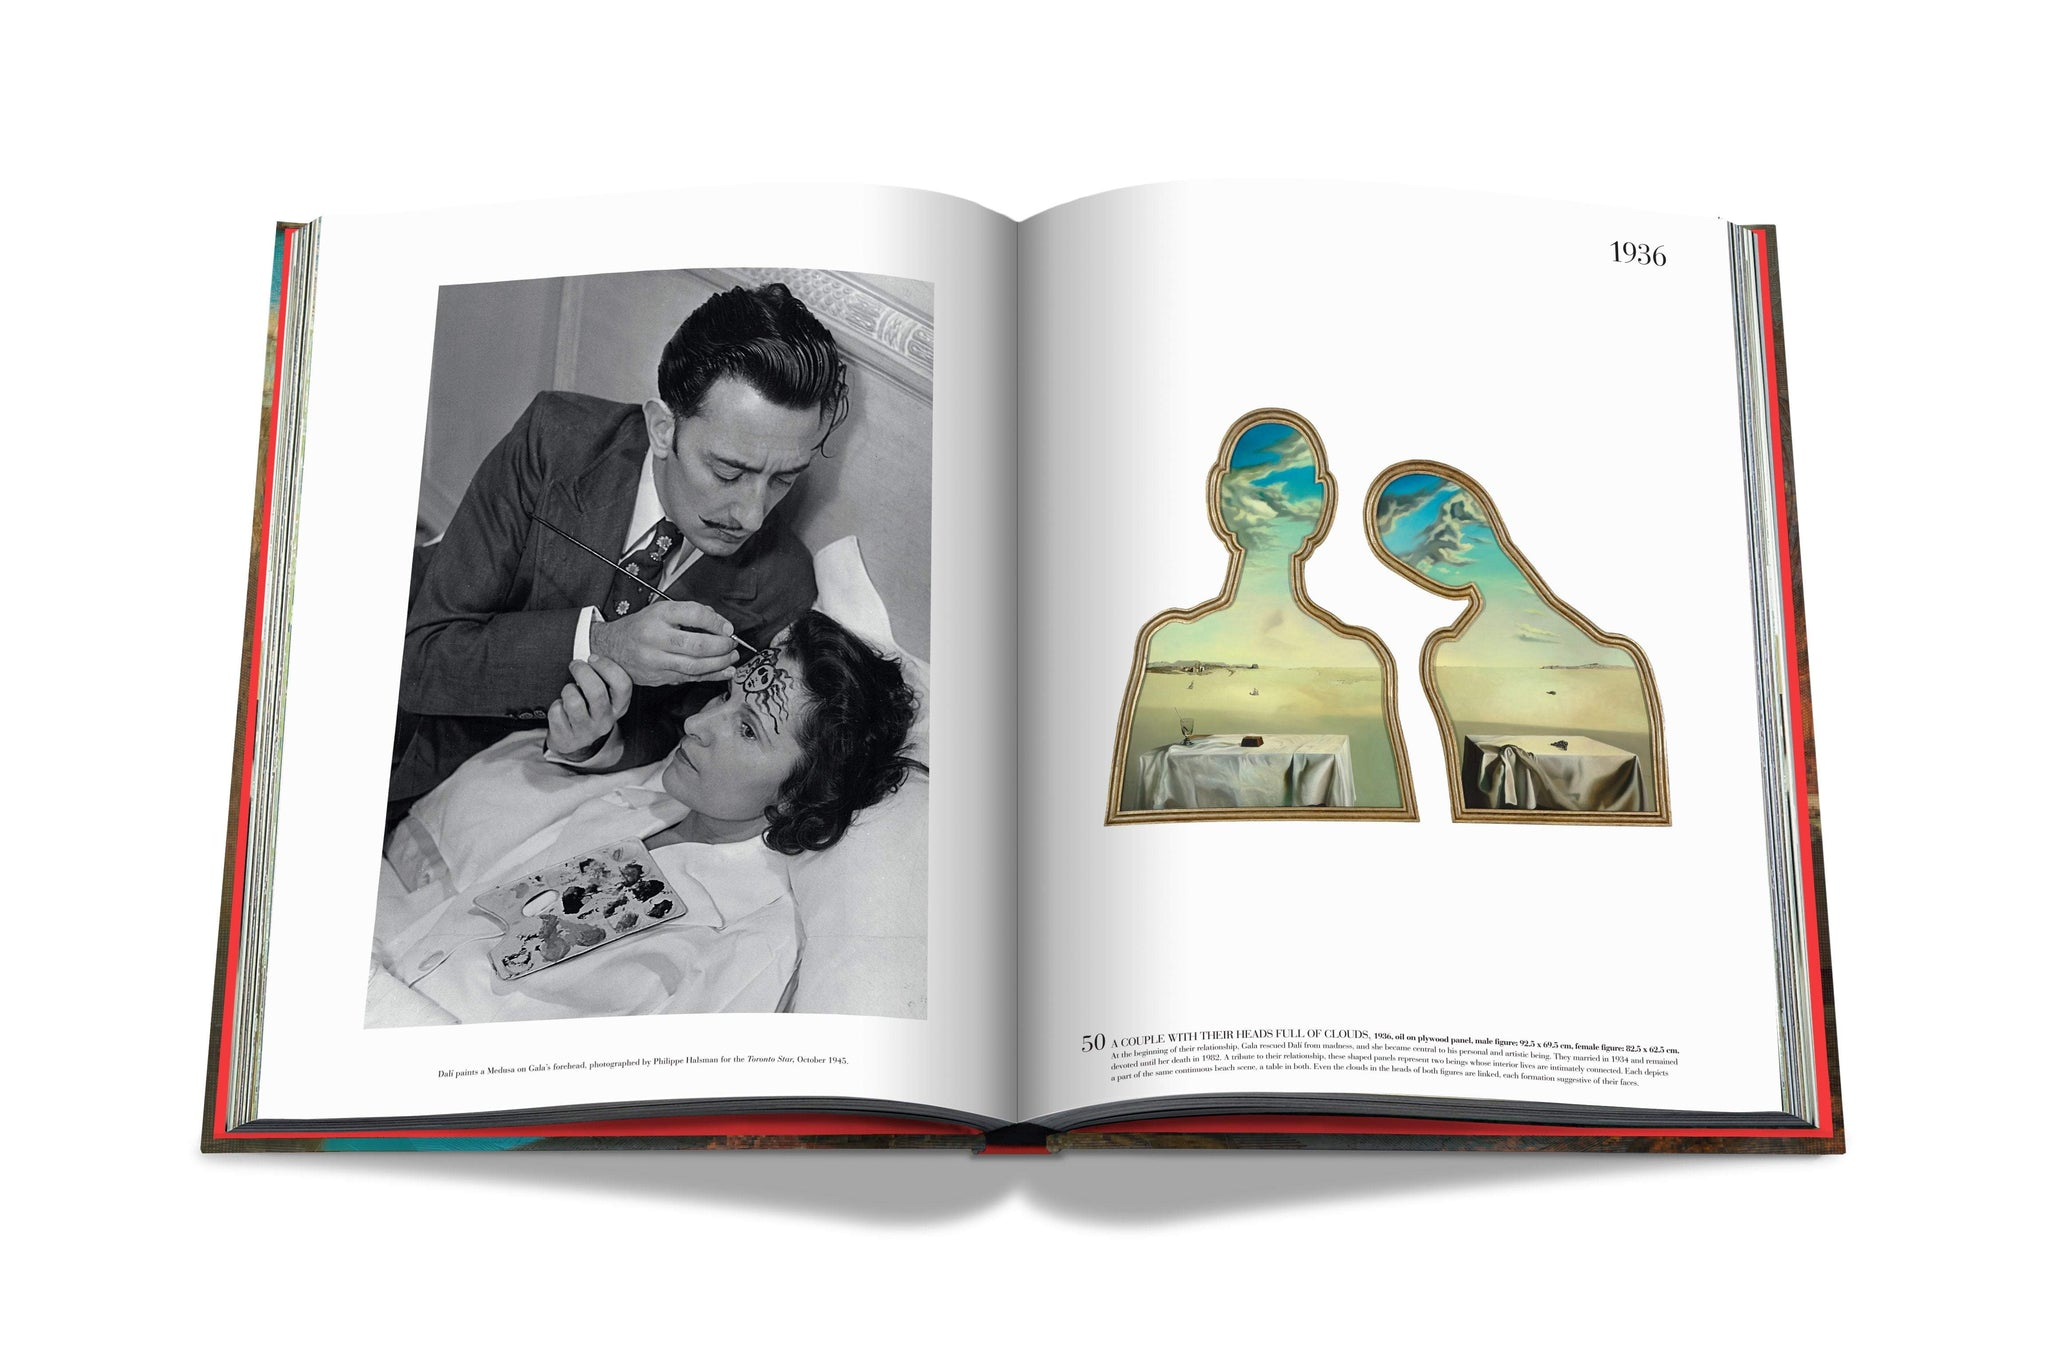 Salvador Dalí : The Impossible Collection